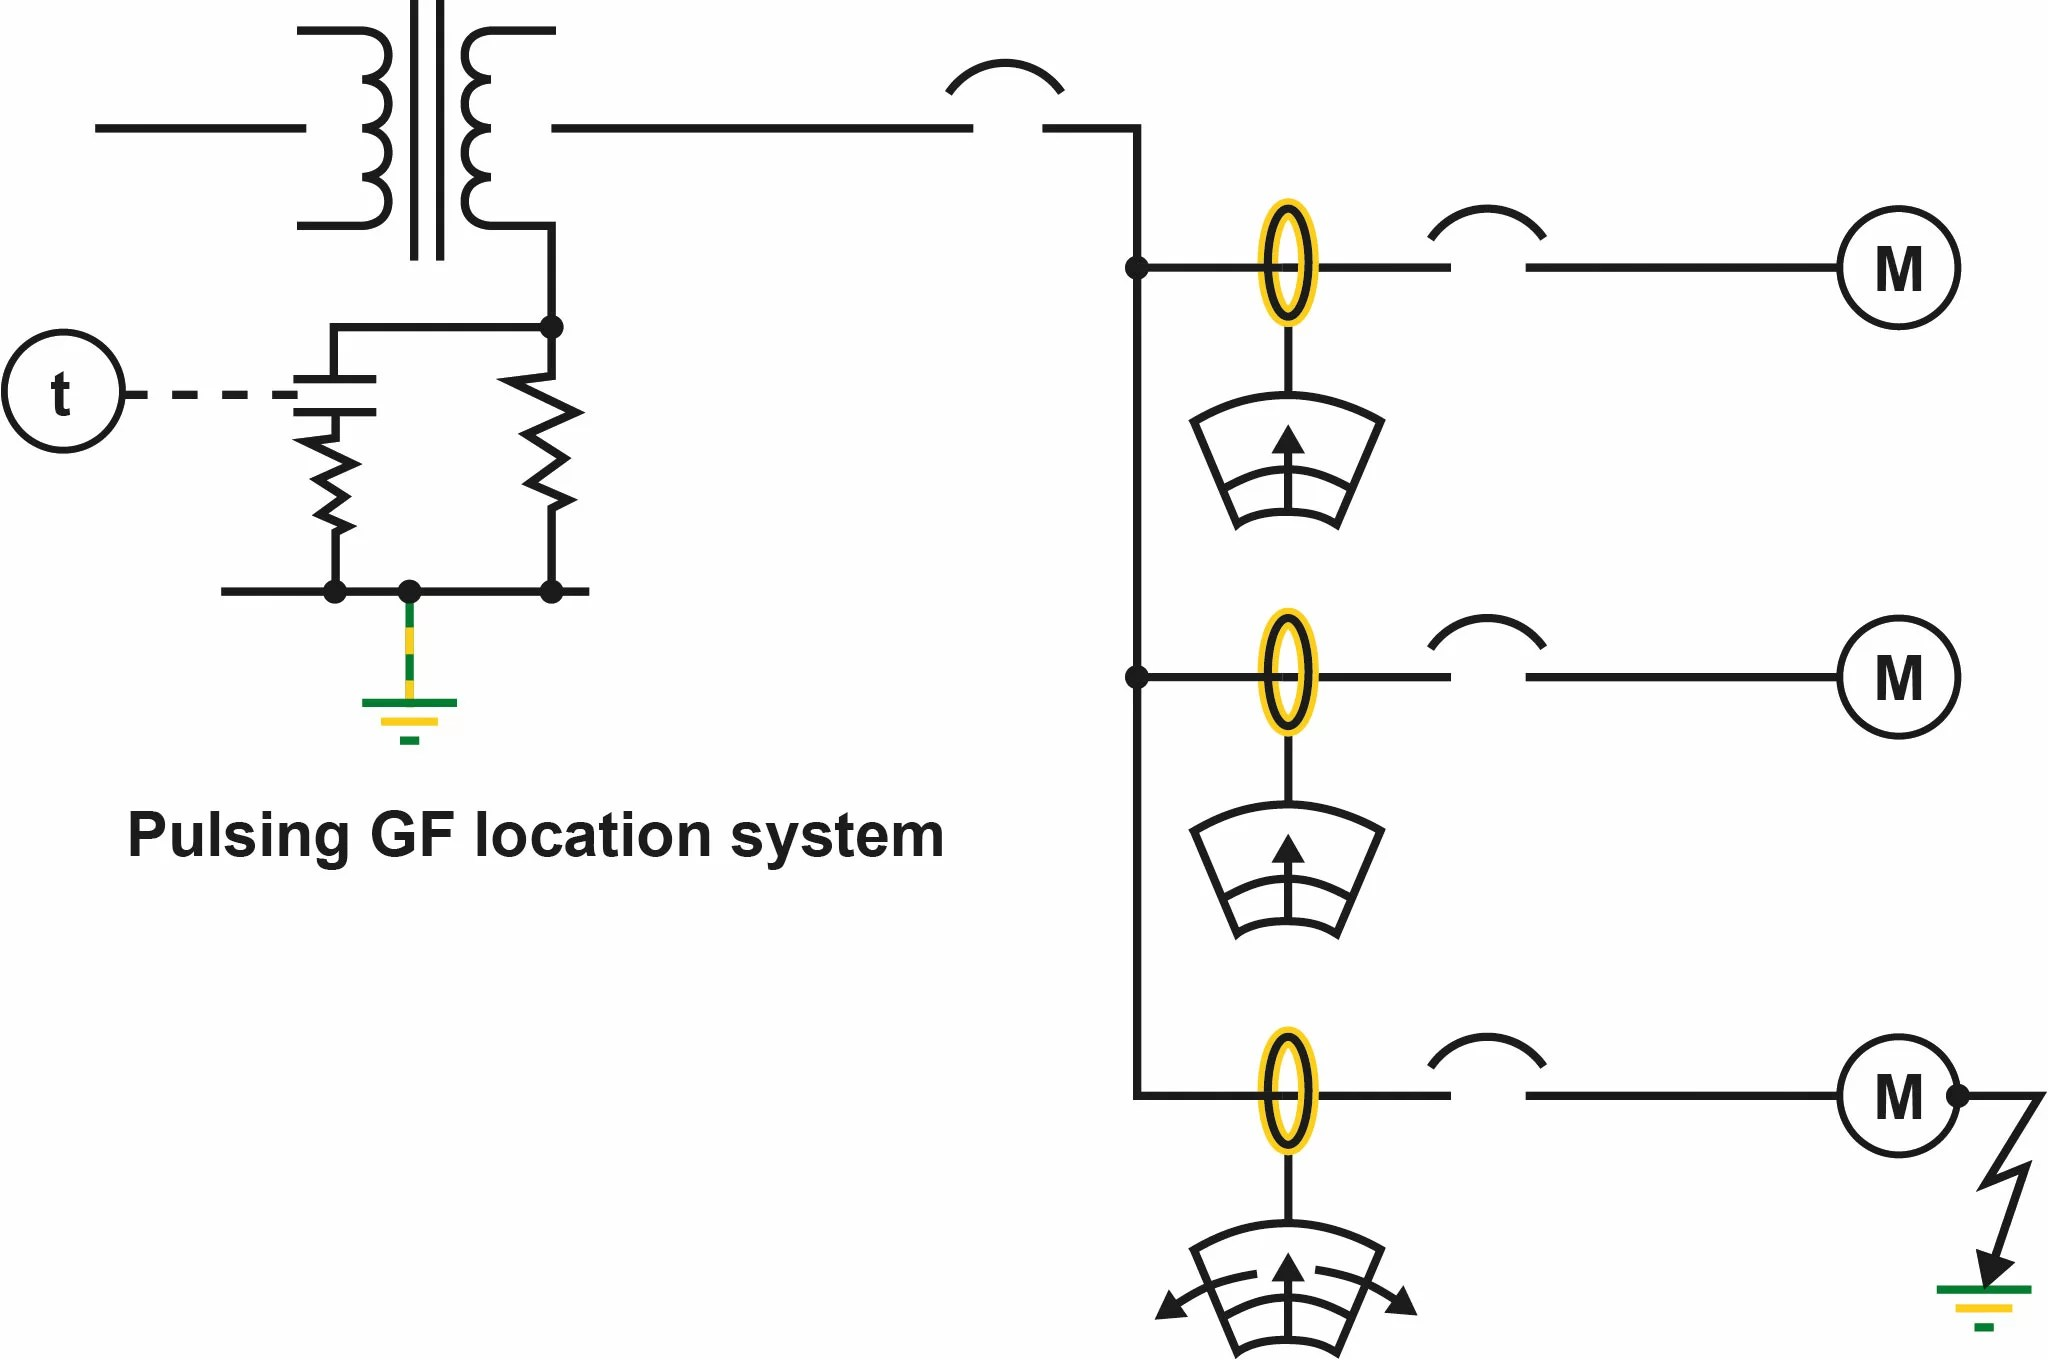 Variable-speed drives and pulsing ground-fault location